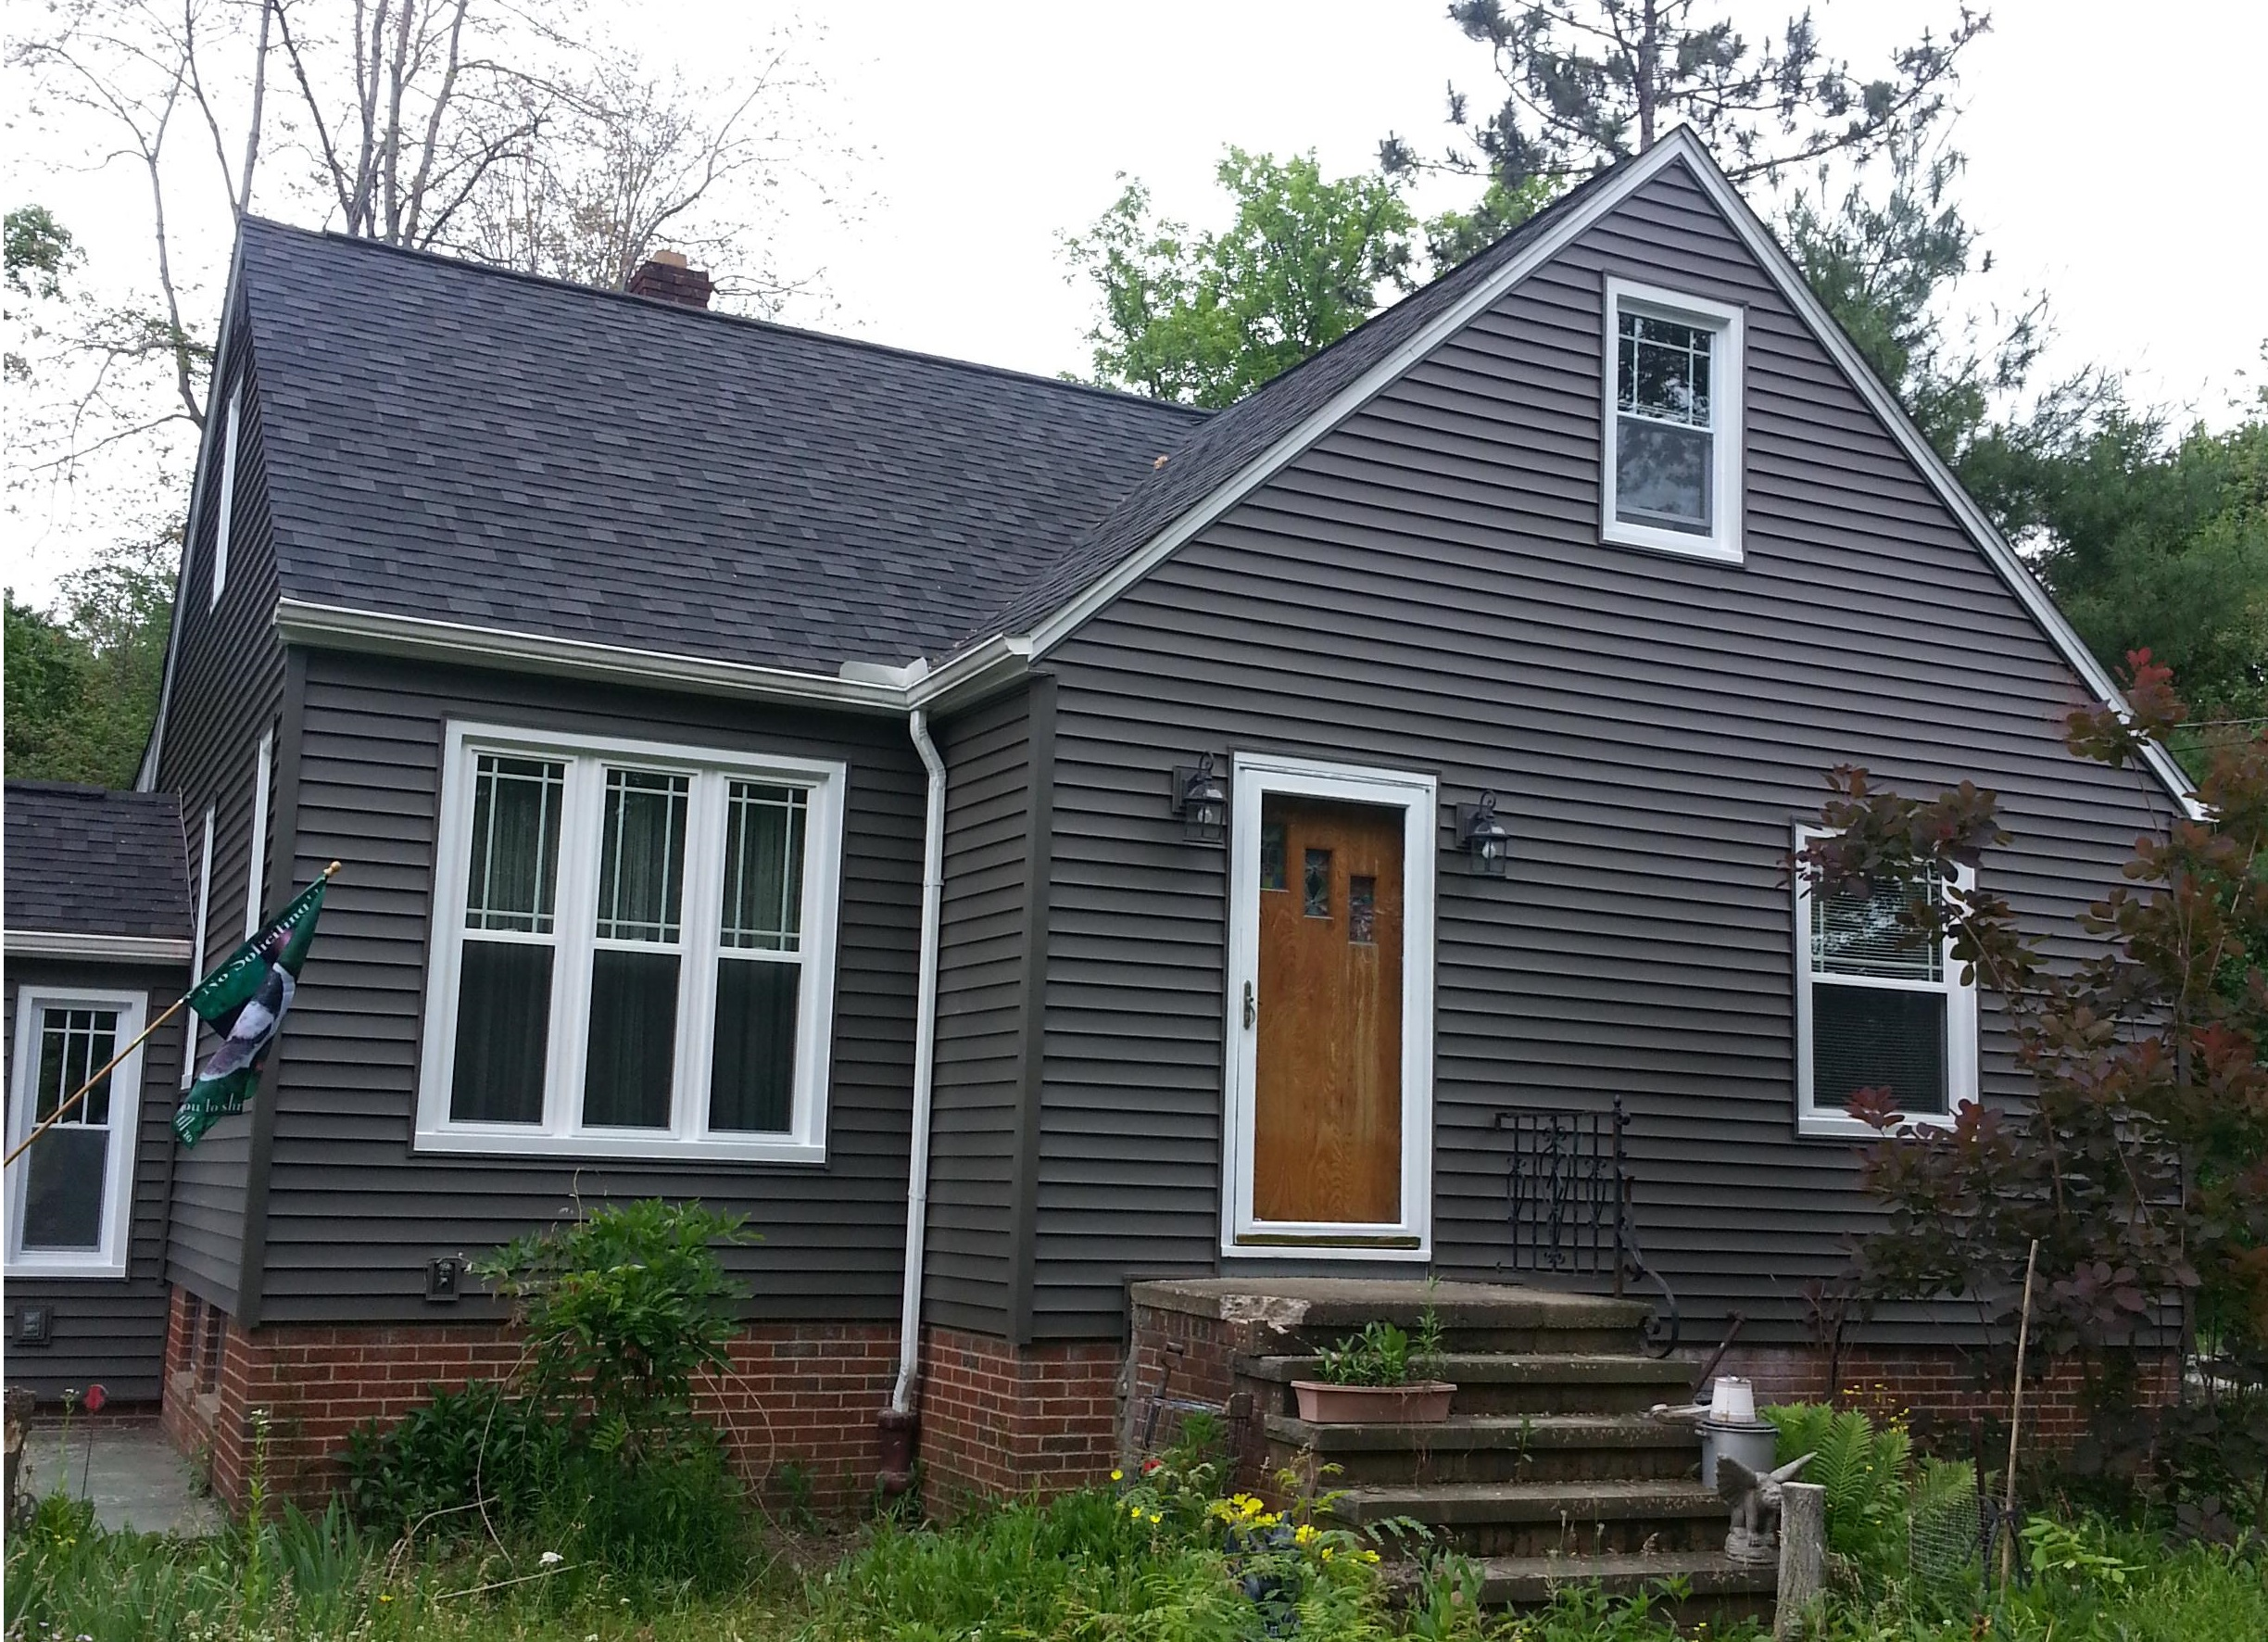 double hung windows prairie grids and siding north royalton ohio